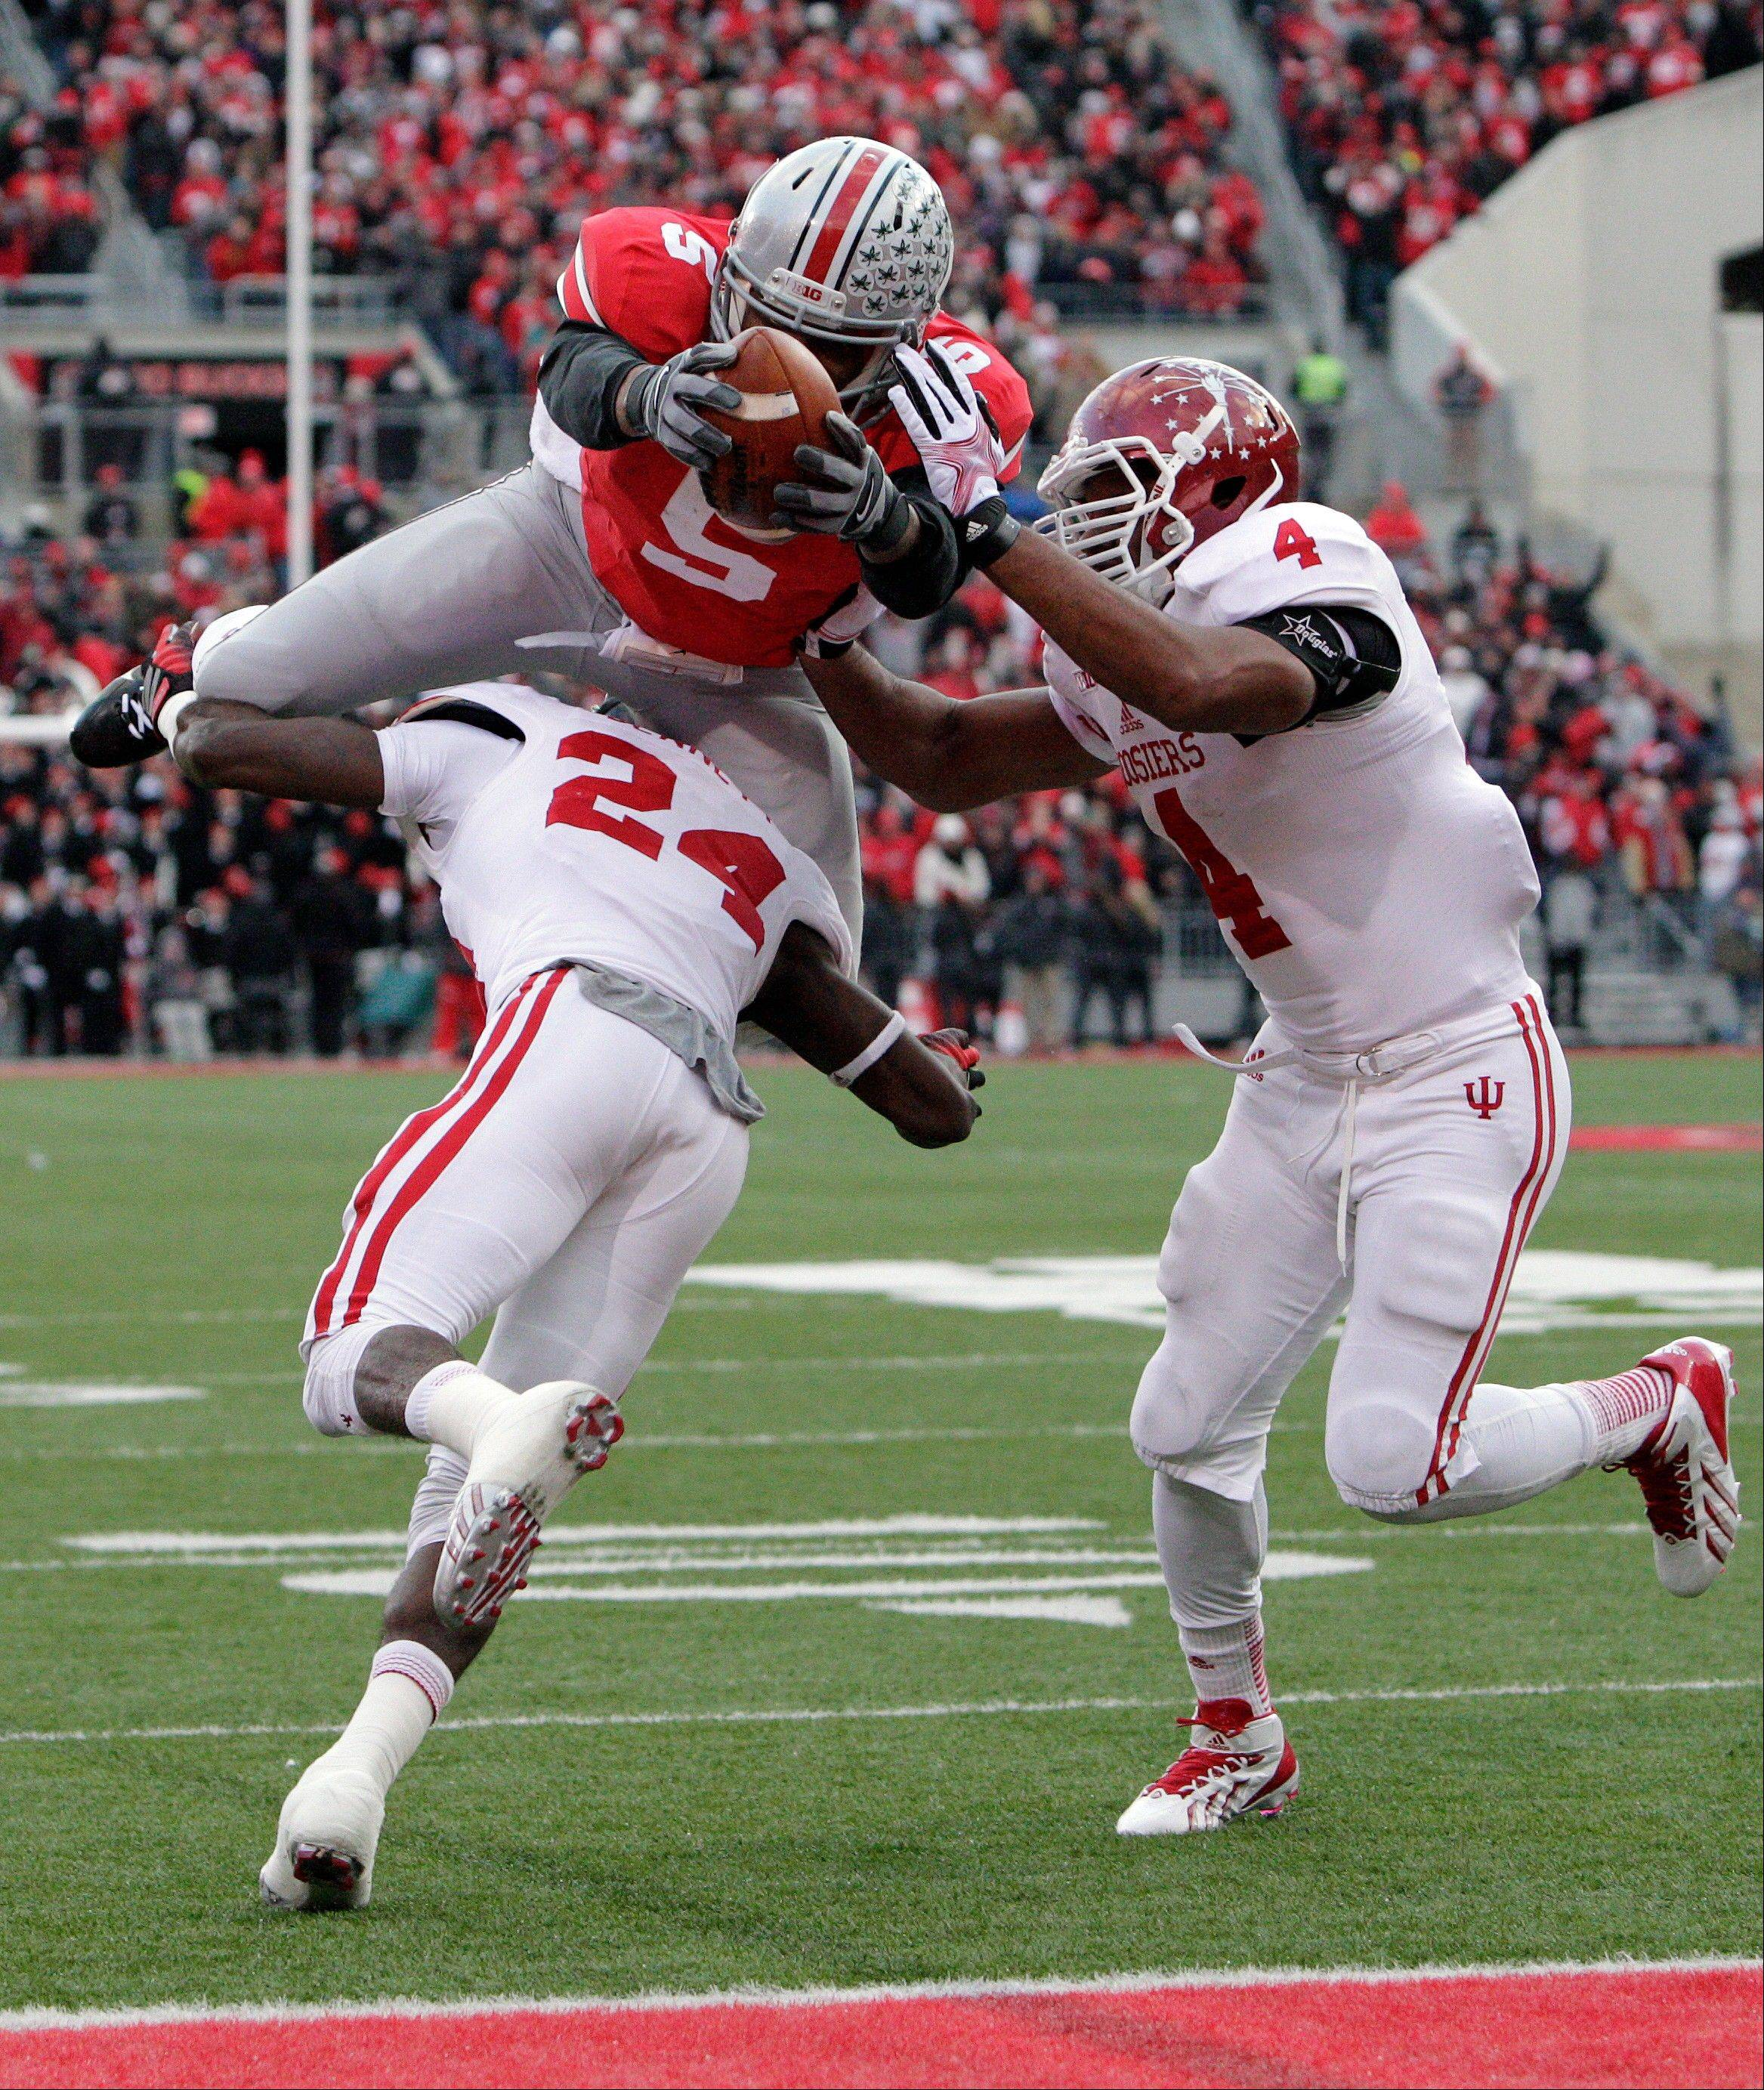 Miller leads No. 4 Buckeyes over Hoosiers, 42-14